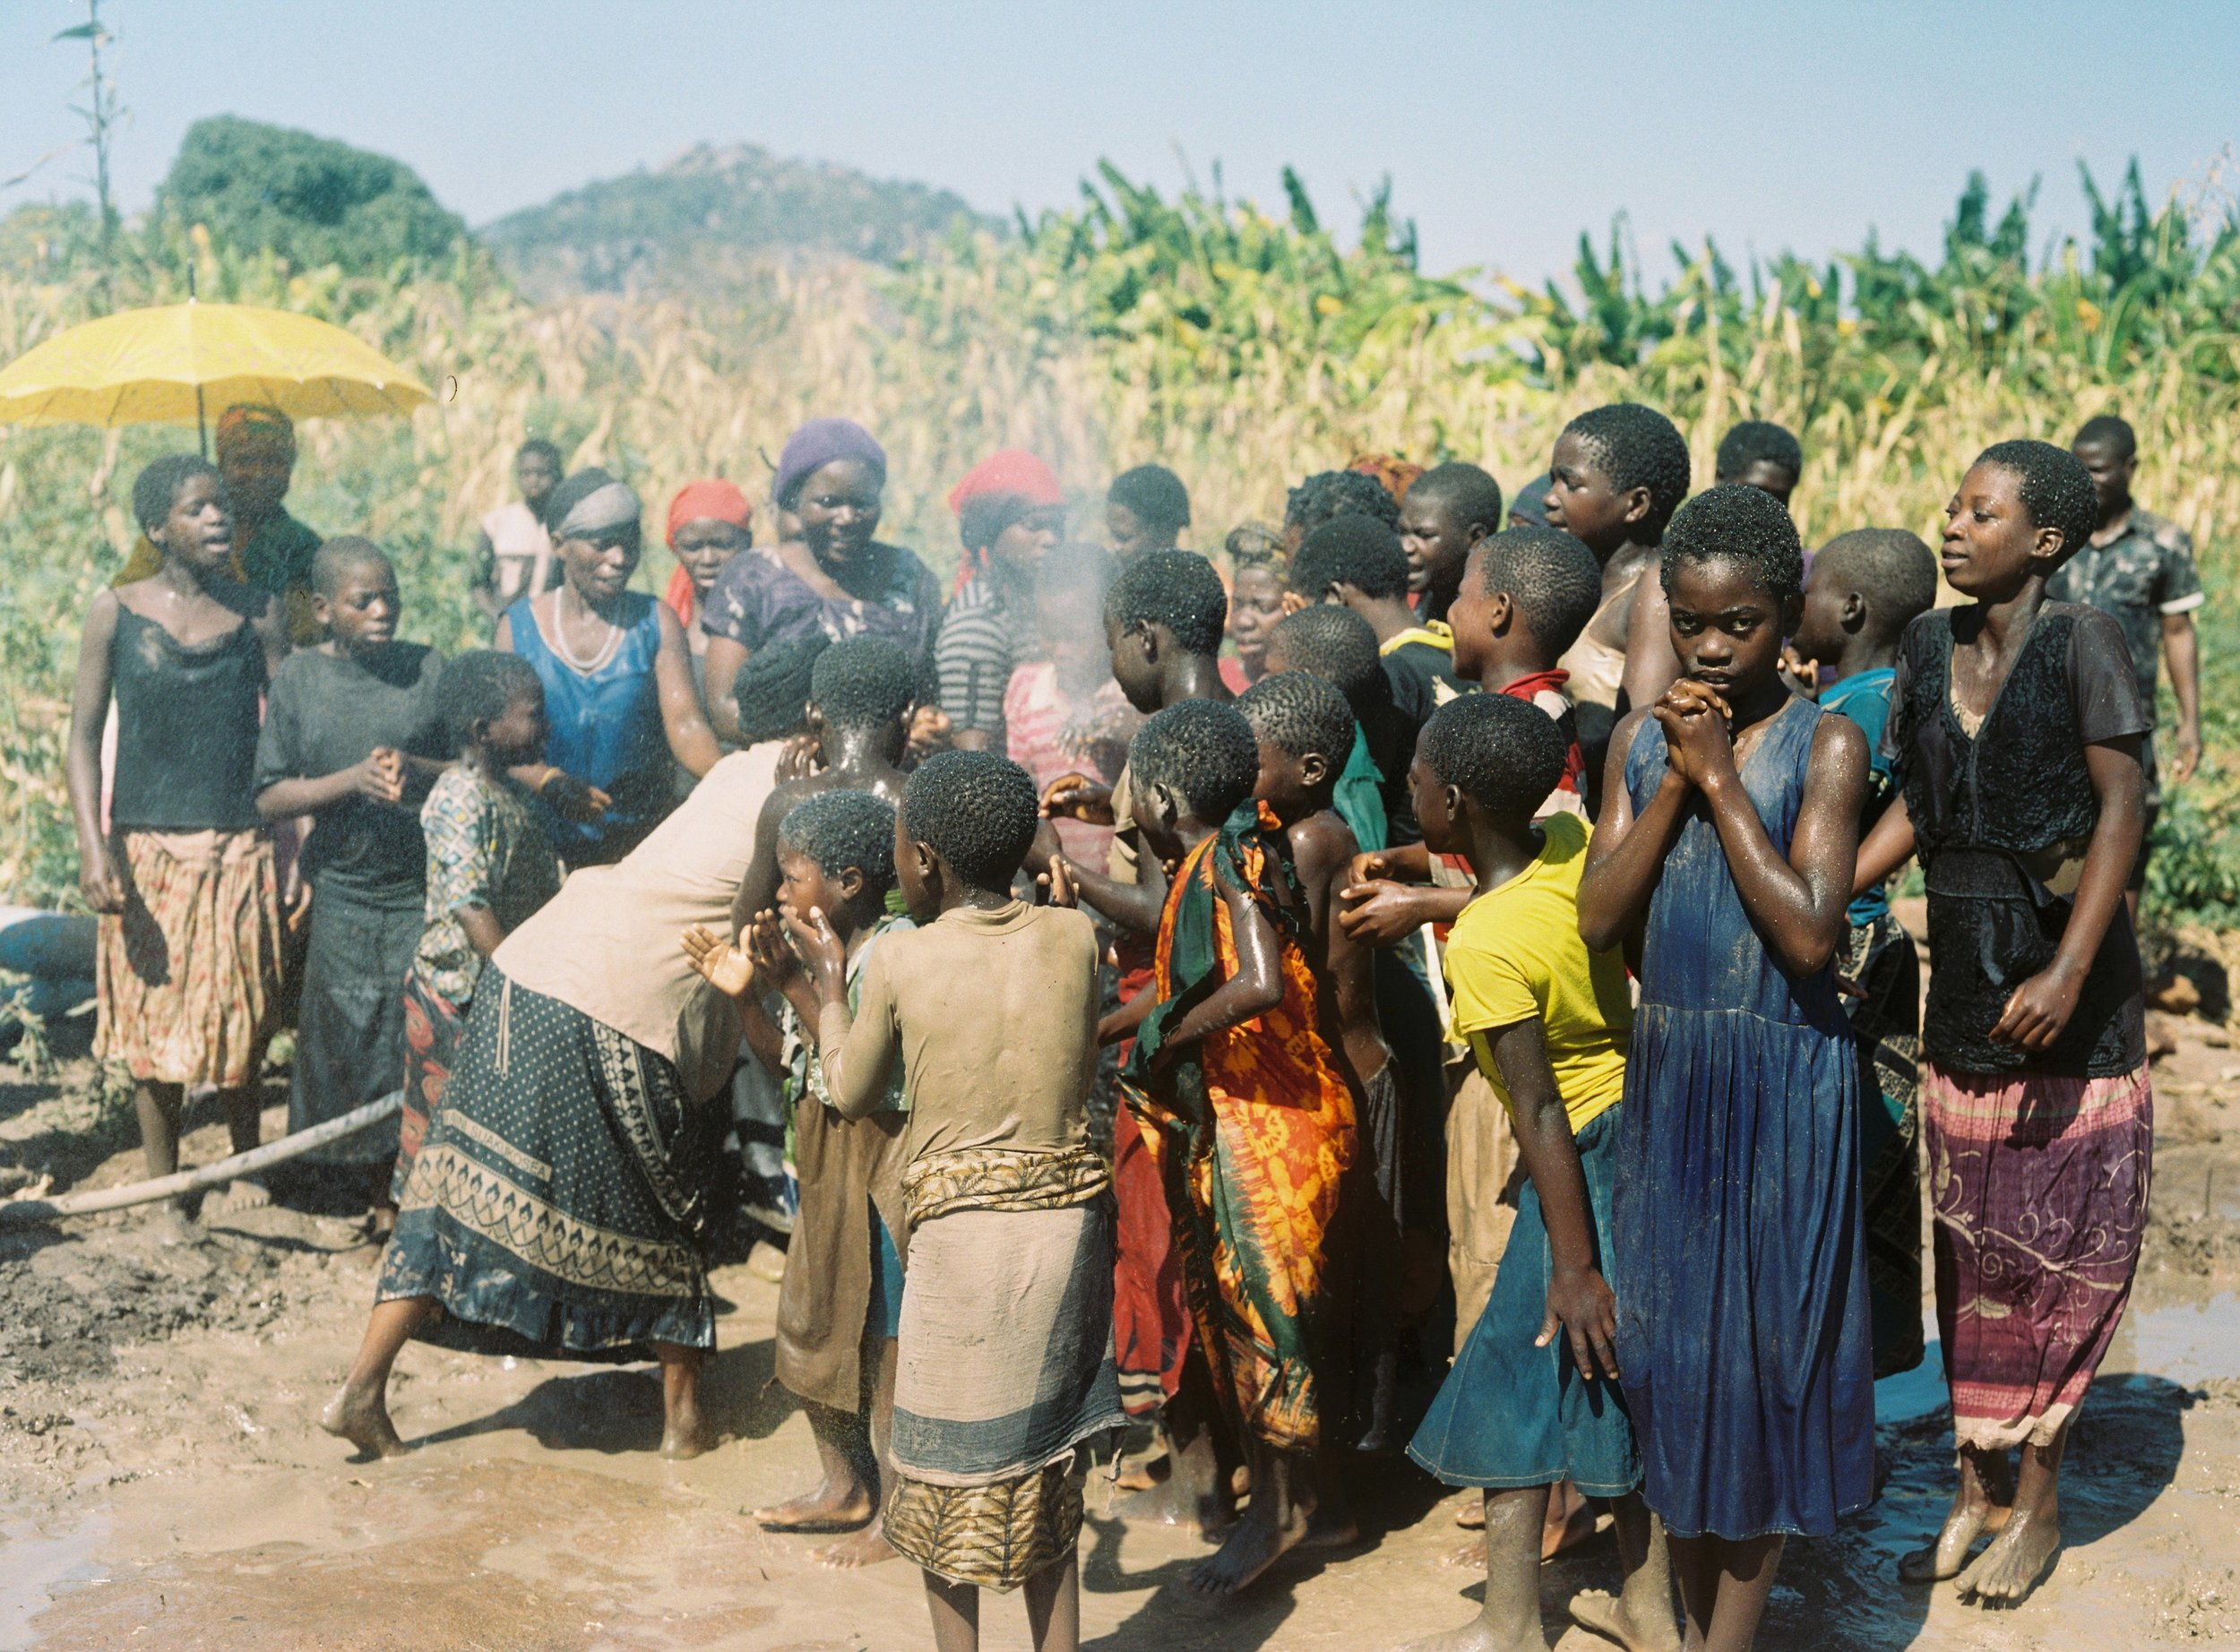 Malawians celebrate the first ever borehole placed in their area.